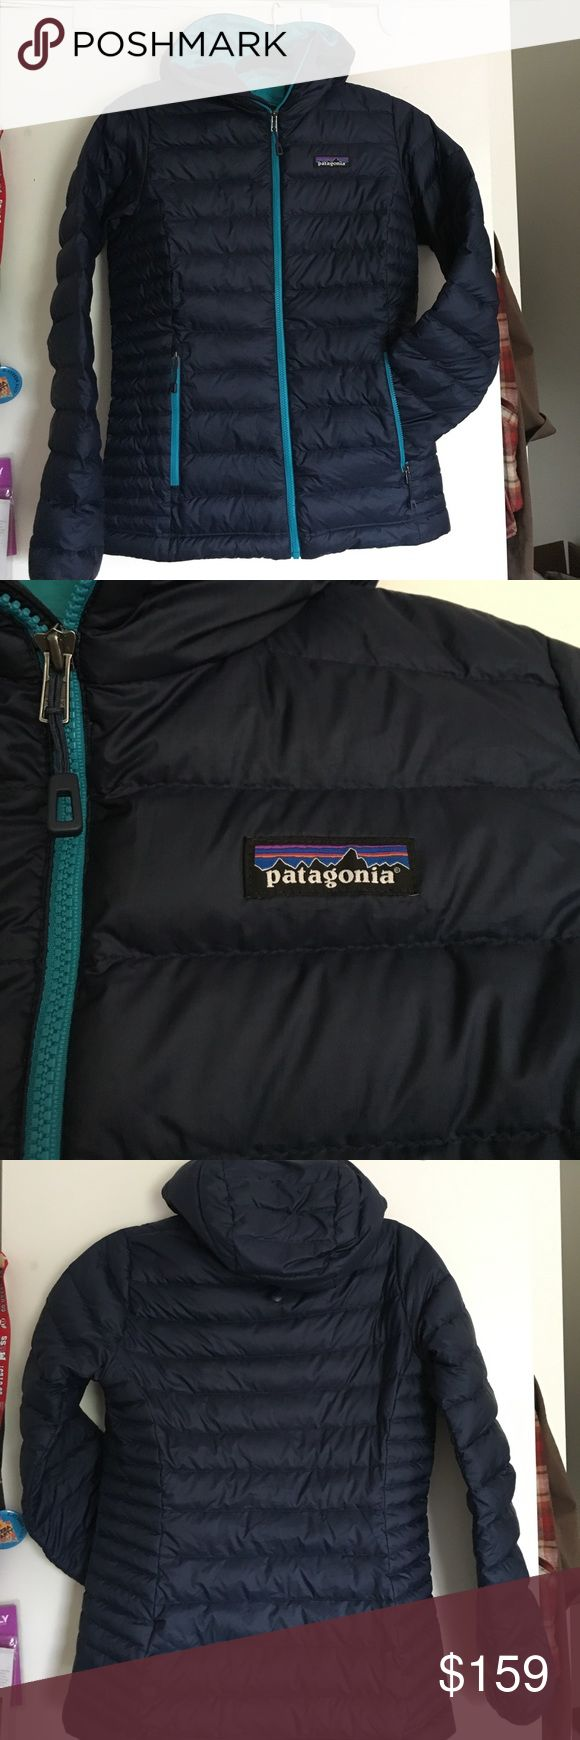 Patagonia down sweater hoody Patagonia down sweater hoody, size xs, color navy blue with howling turquoise accents and inside, from fall 2016 season, hardly used and great condition! Still has tags! Patagonia Jackets & Coats Puffers